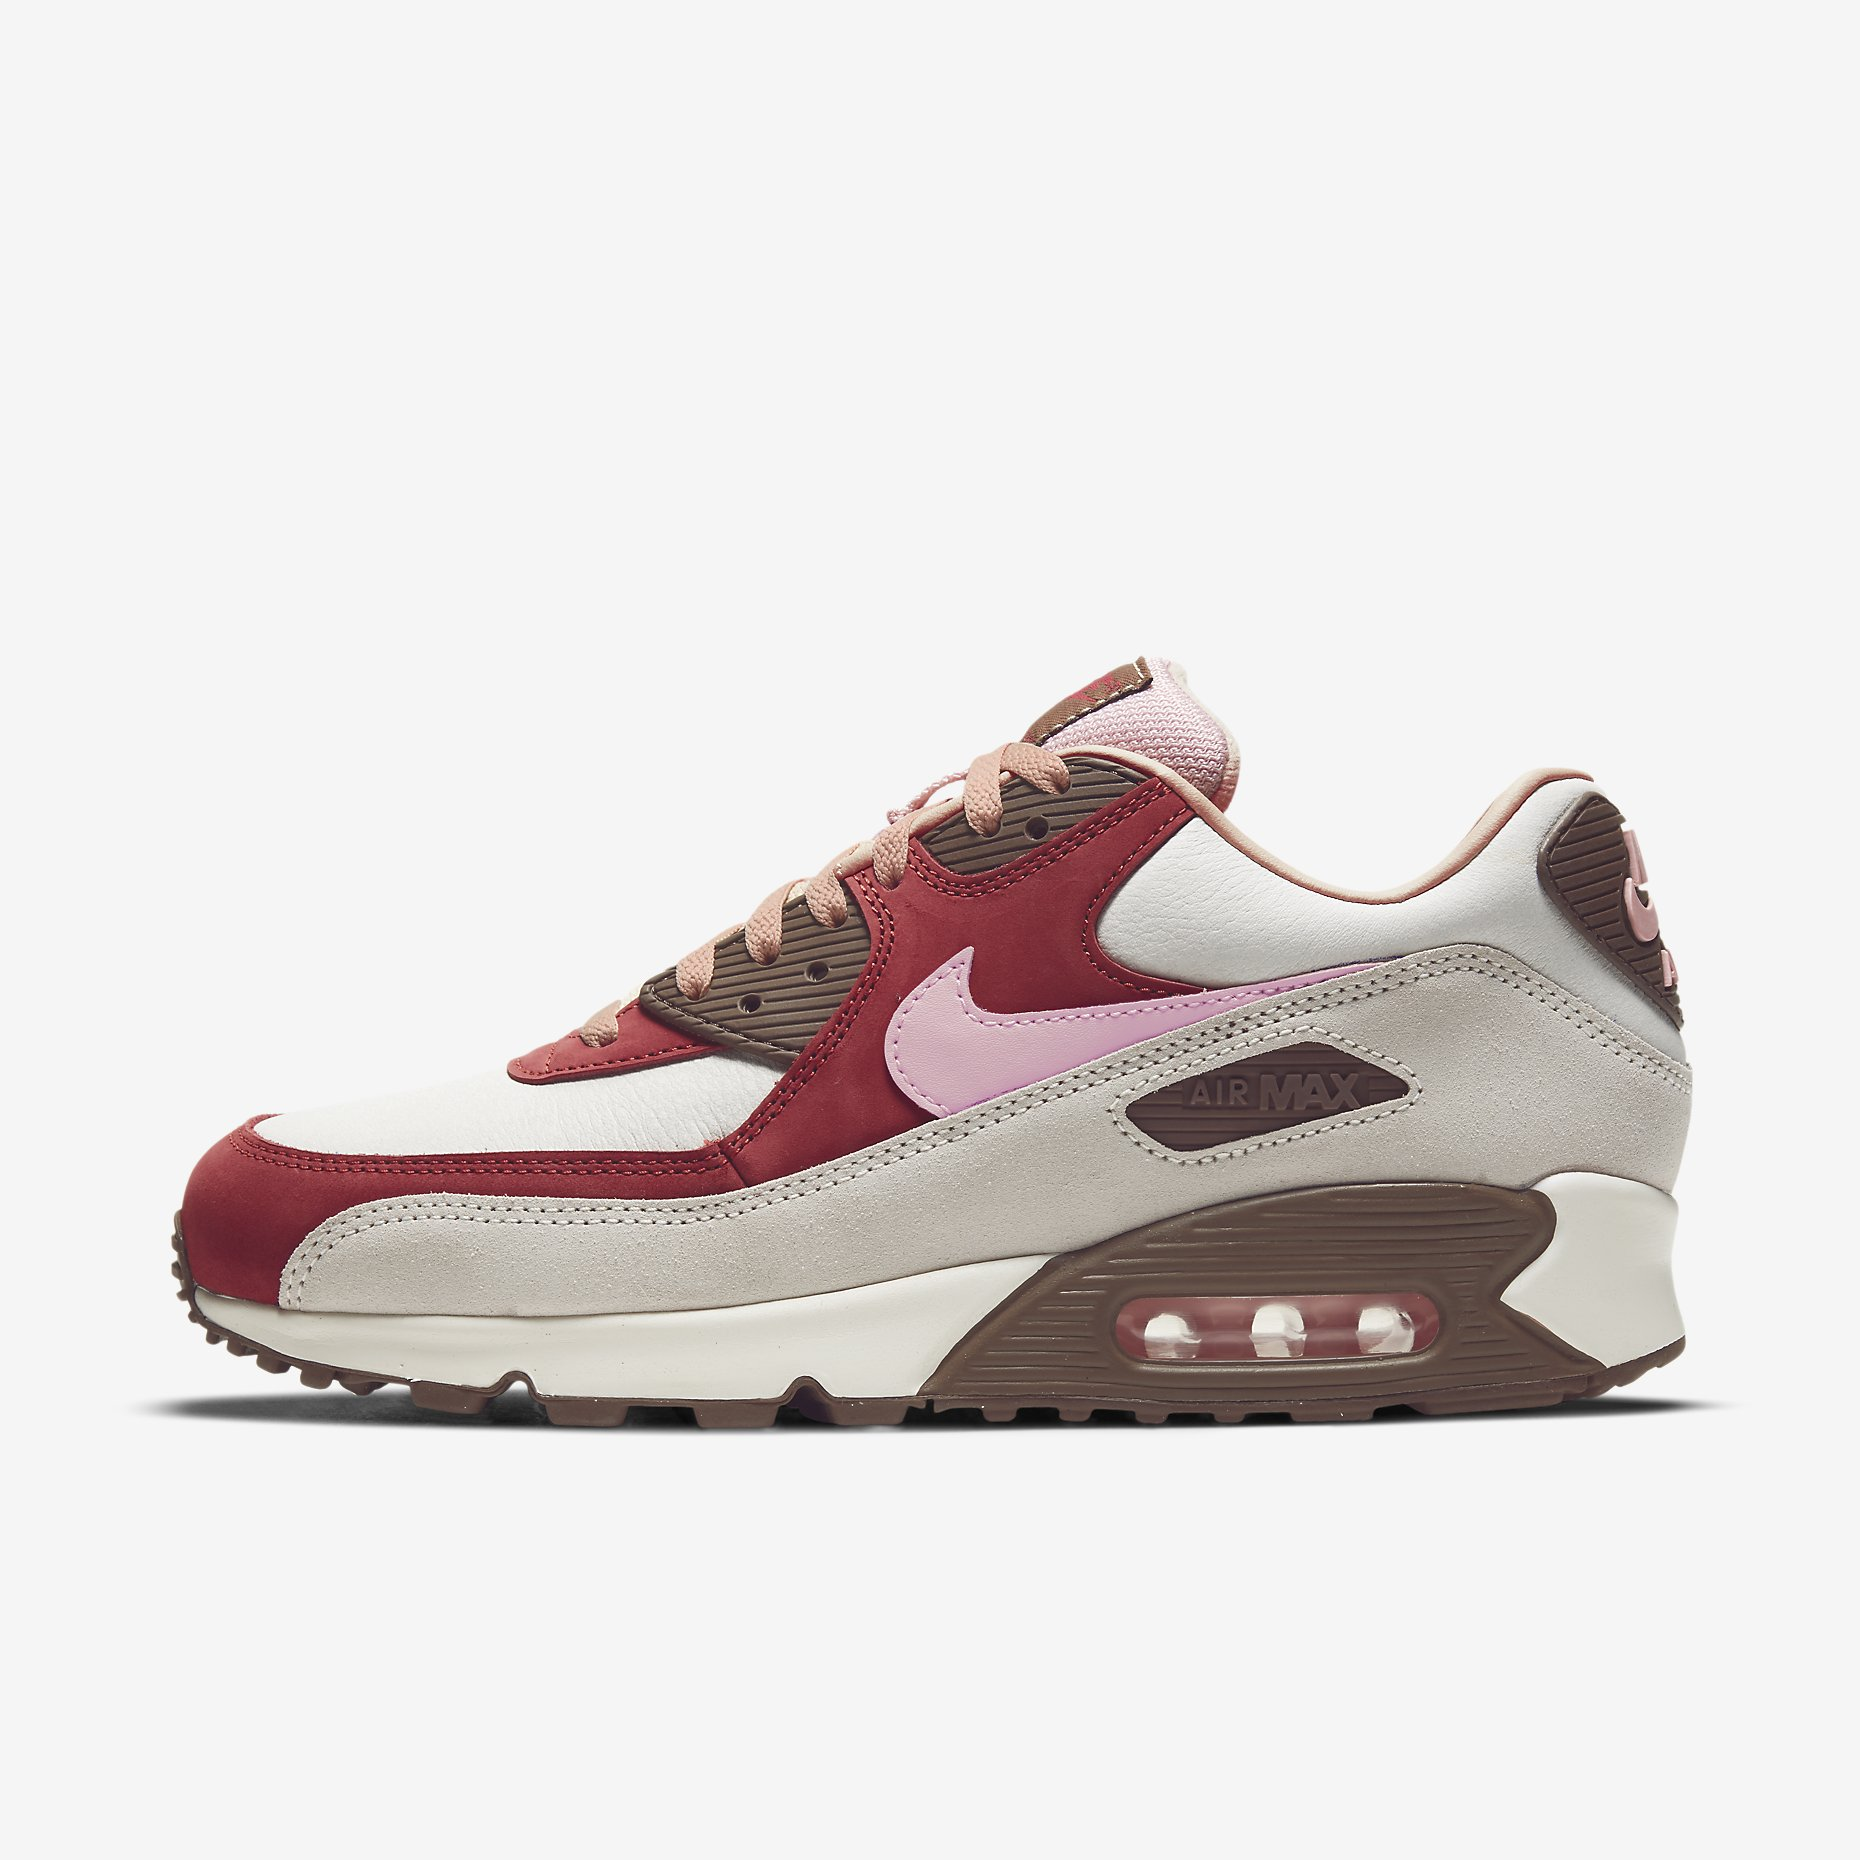 Nike Air Max 90 NRG 'Bacon'}